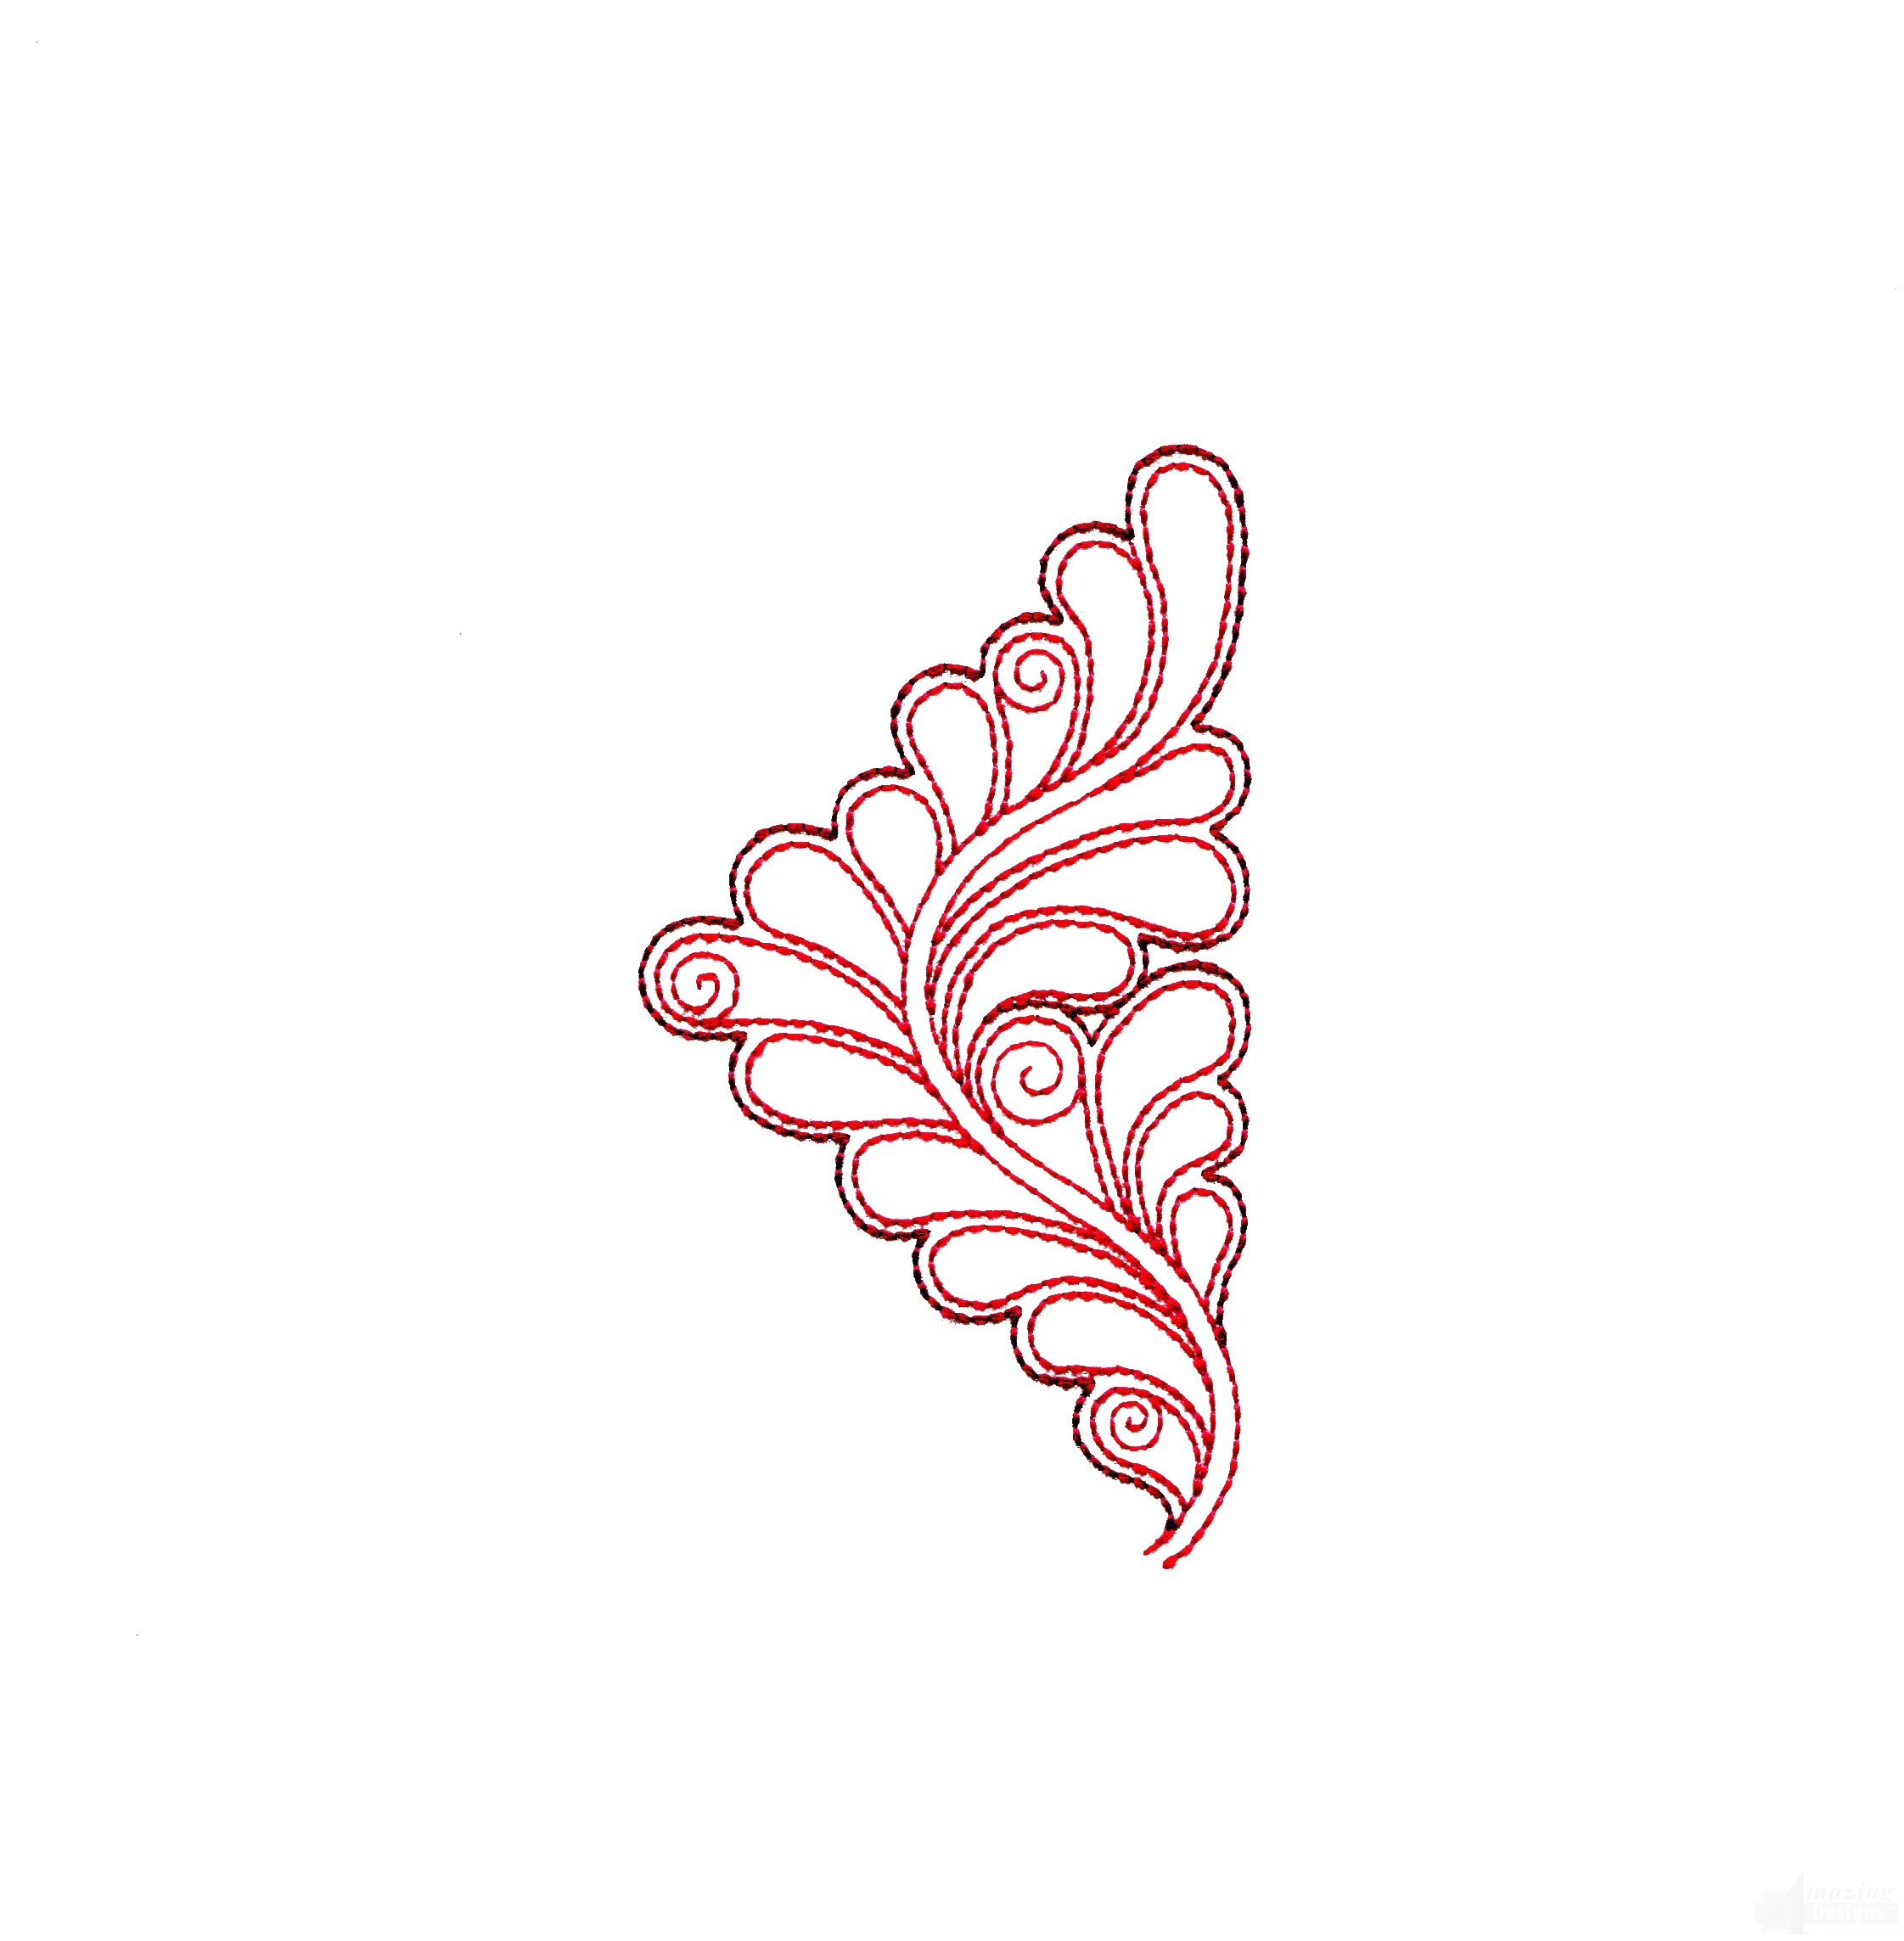 Rs111 Quilt Motif Embroidery Design